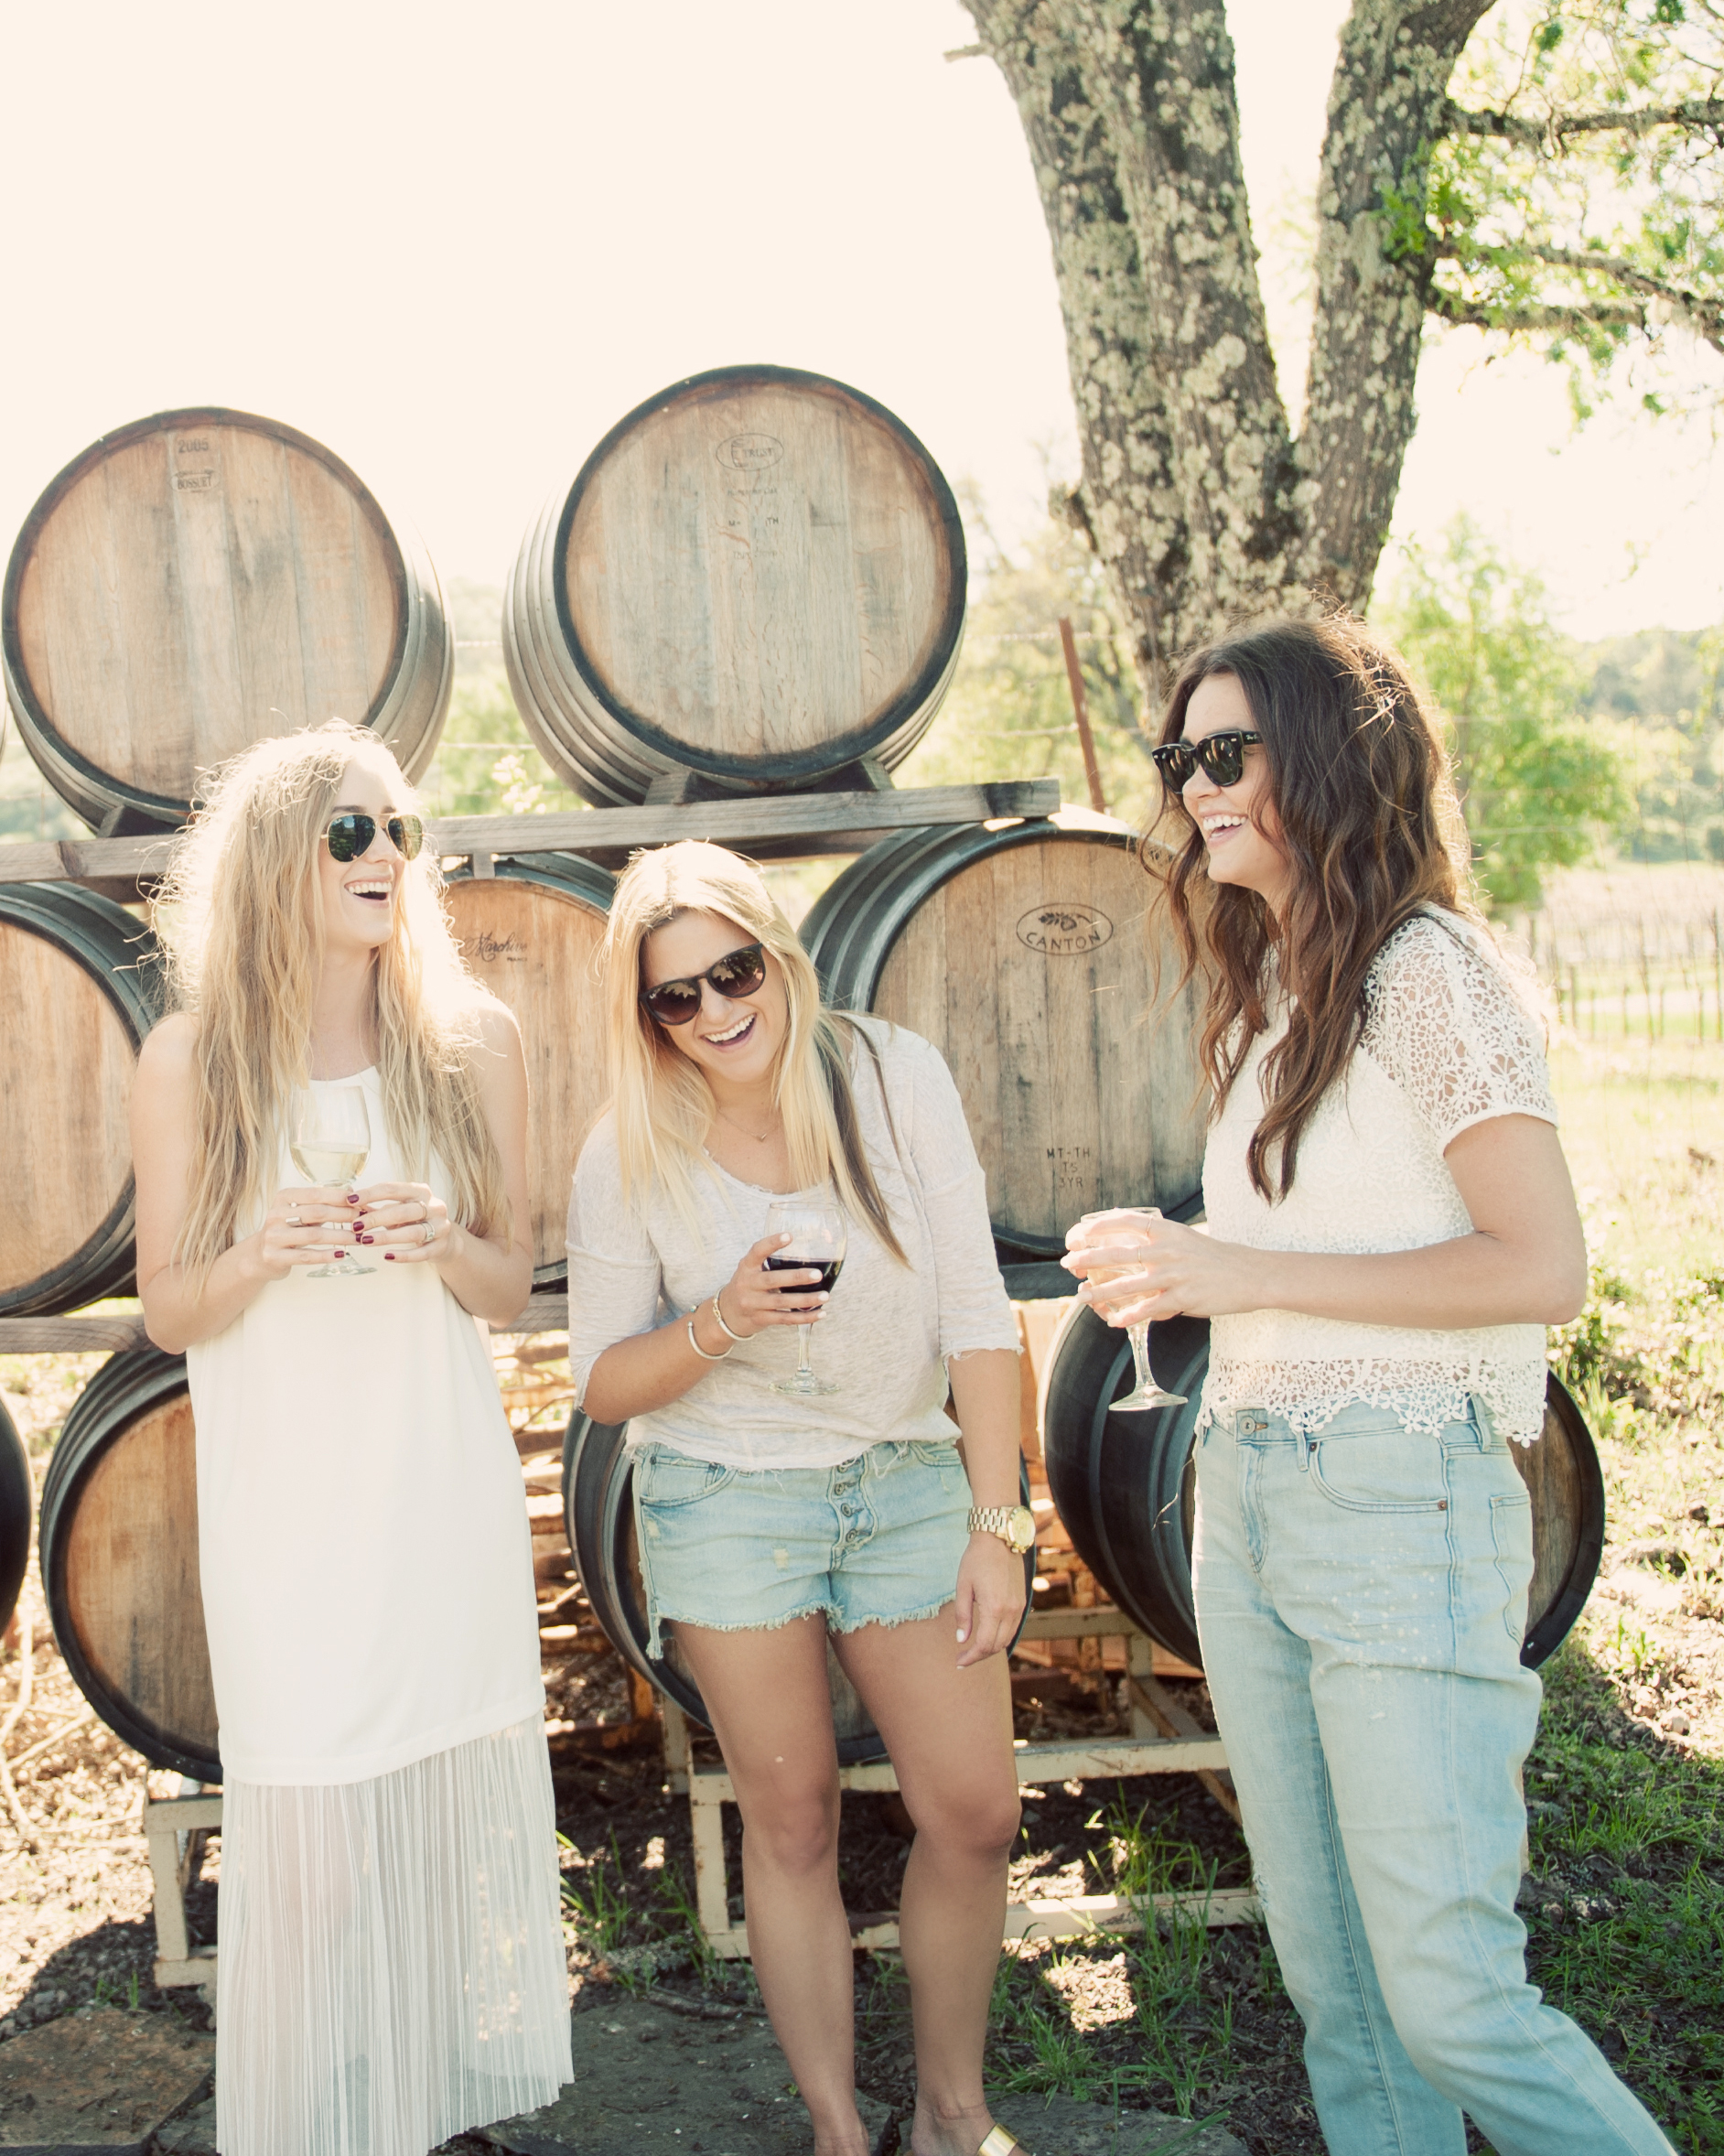 eatsleepwear-napa-valley-bachelorette-party-friends-wine-cask-0415.jpg